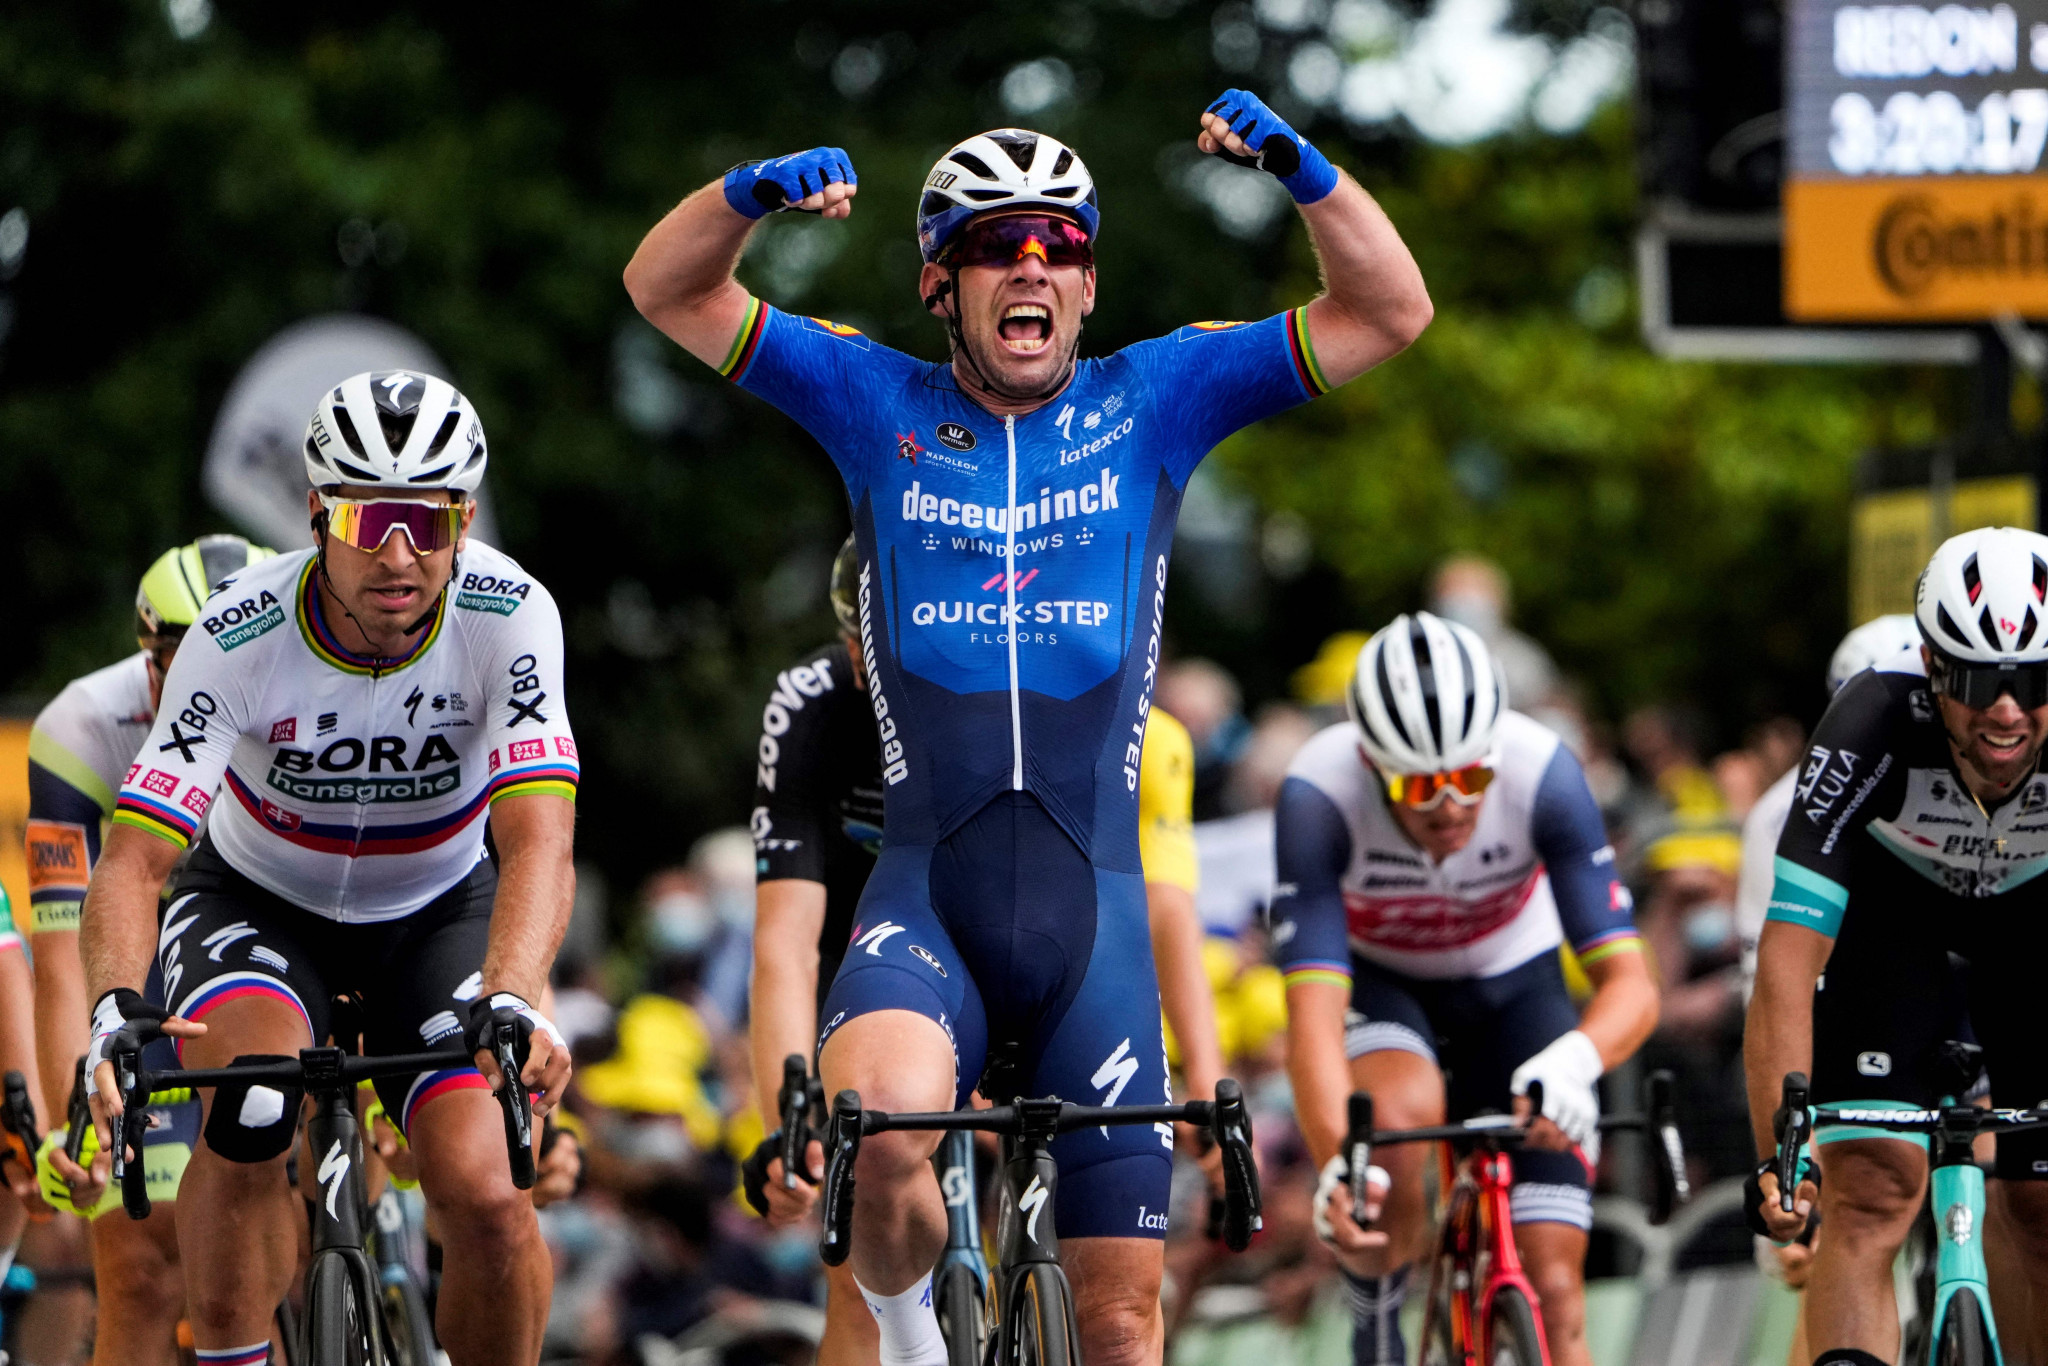 Emotional Cavendish wins first stage at Tour de France in five years